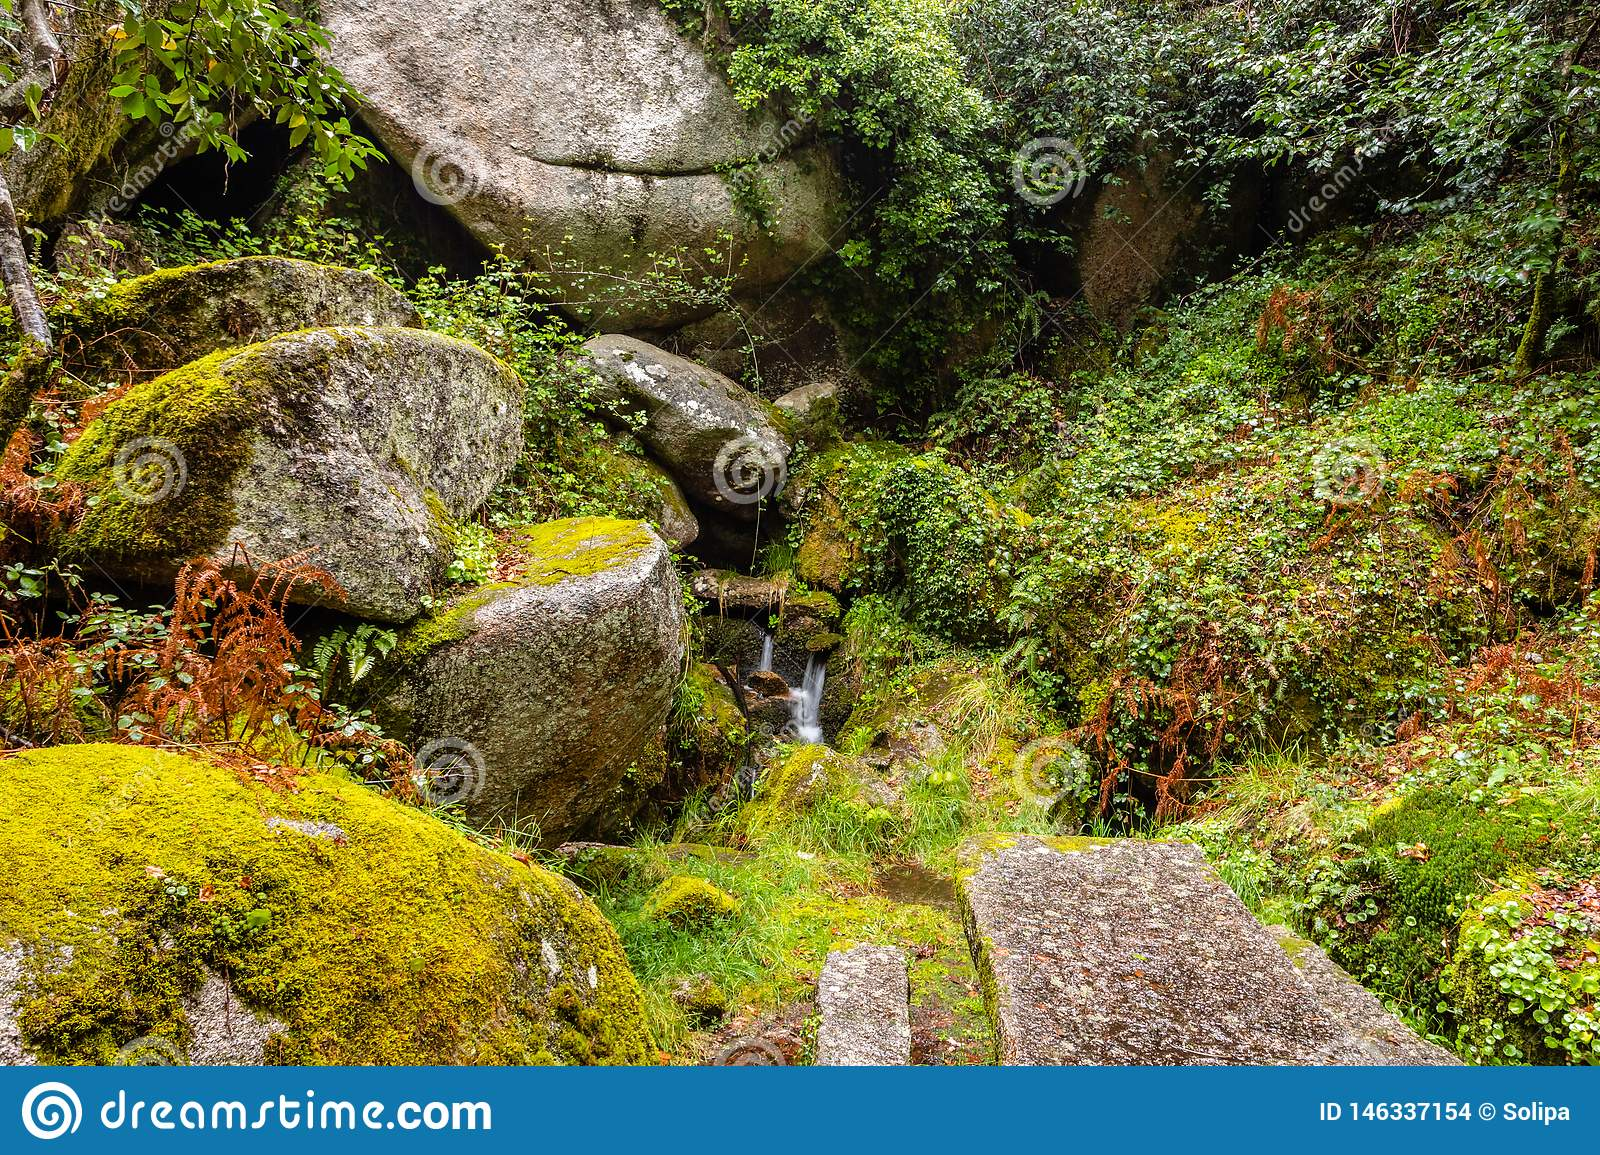 Rocks covered by green moss in the Peneda geres National Park forest, north of Portugal